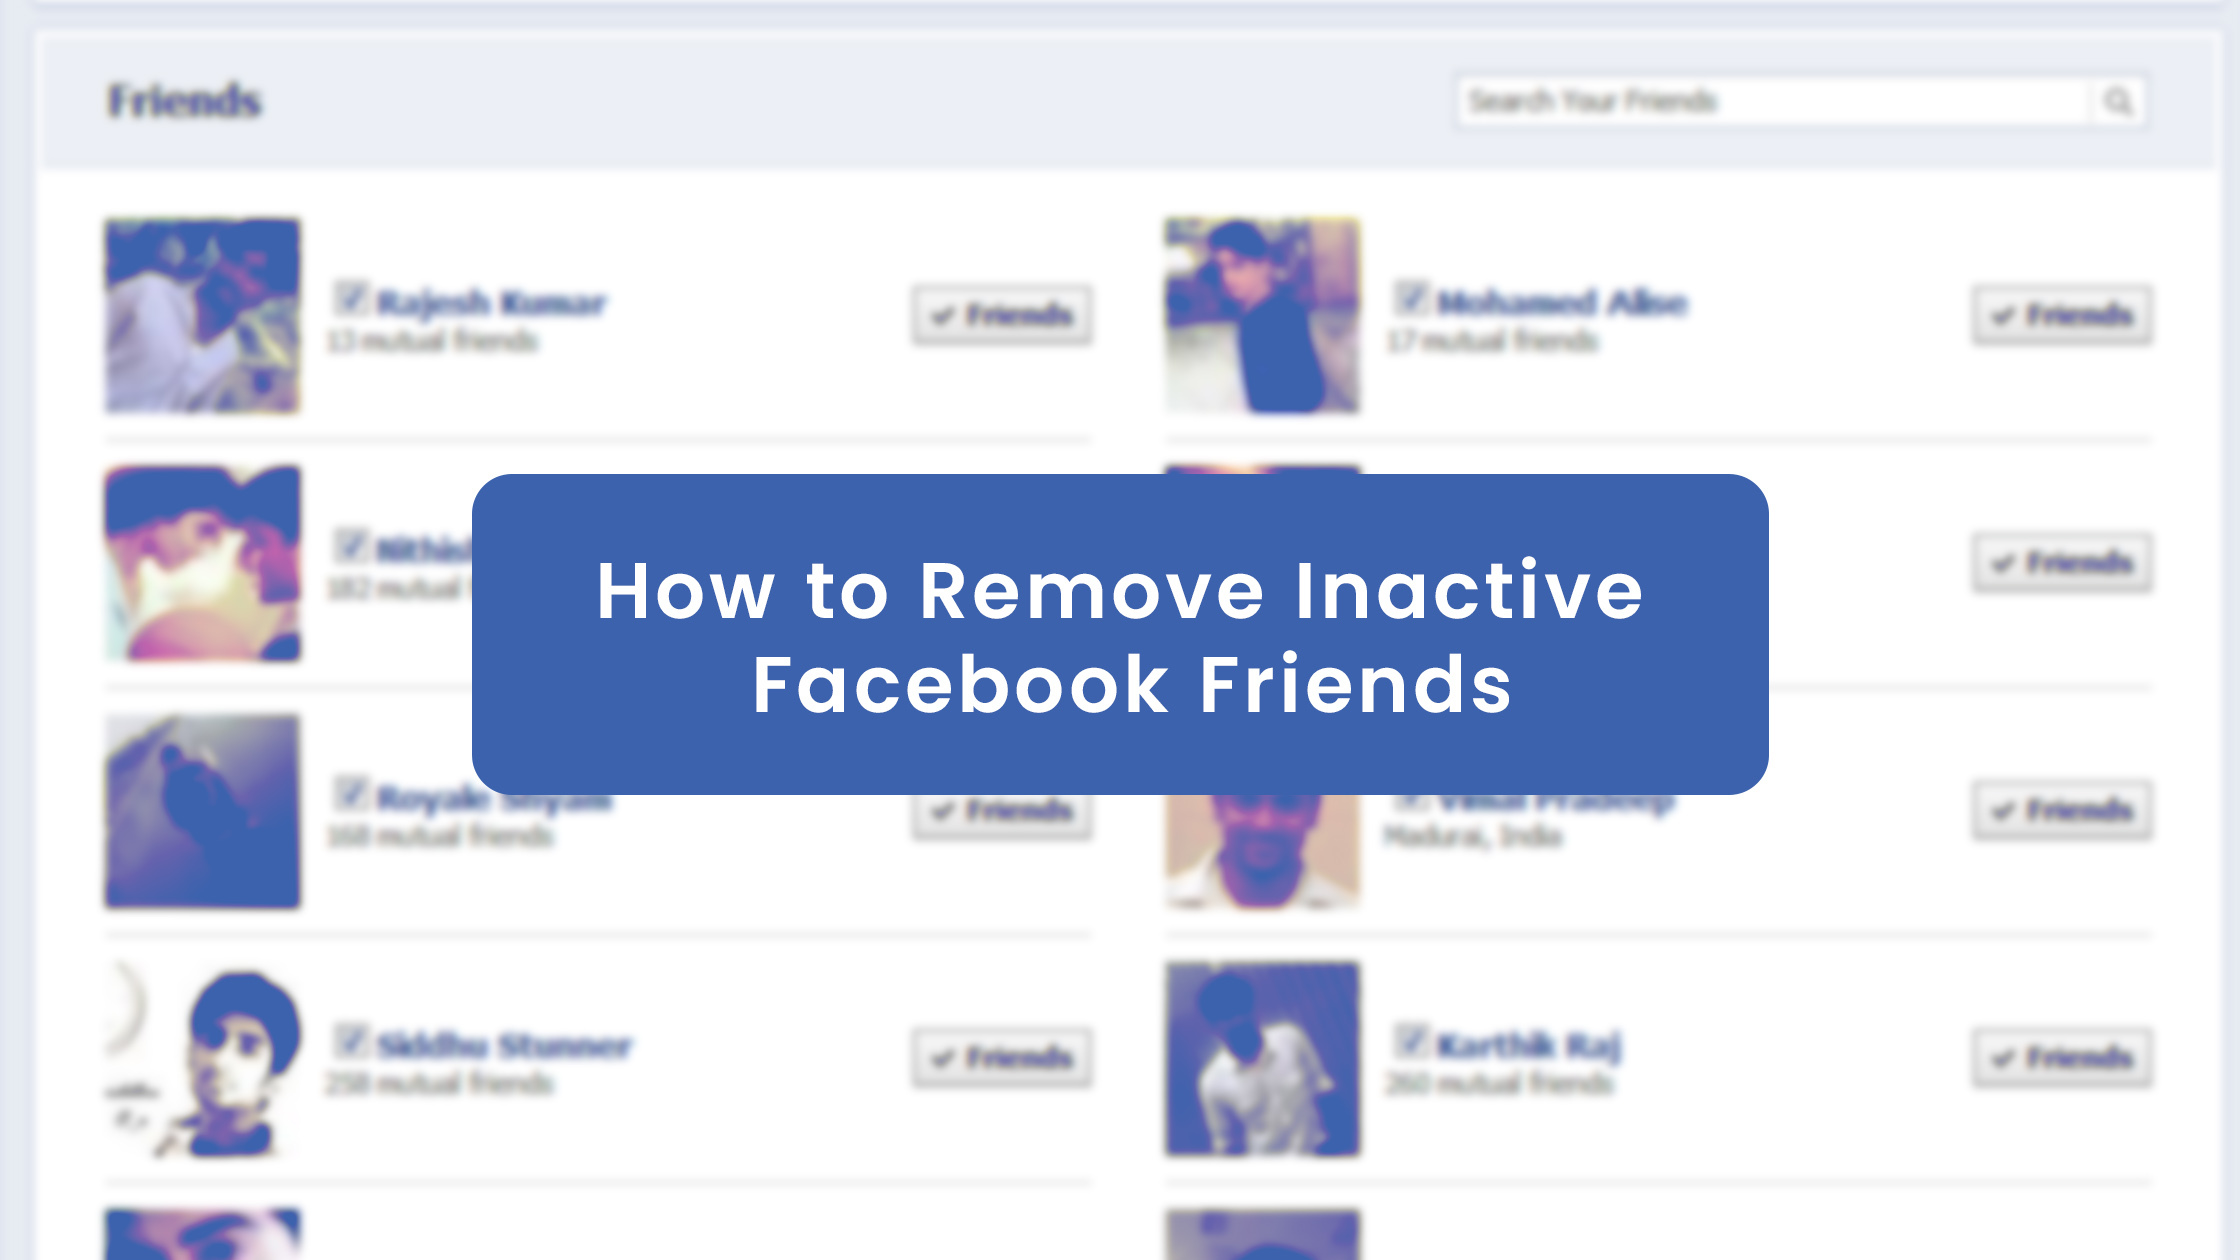 How to Remove Inactive Facebook Friends